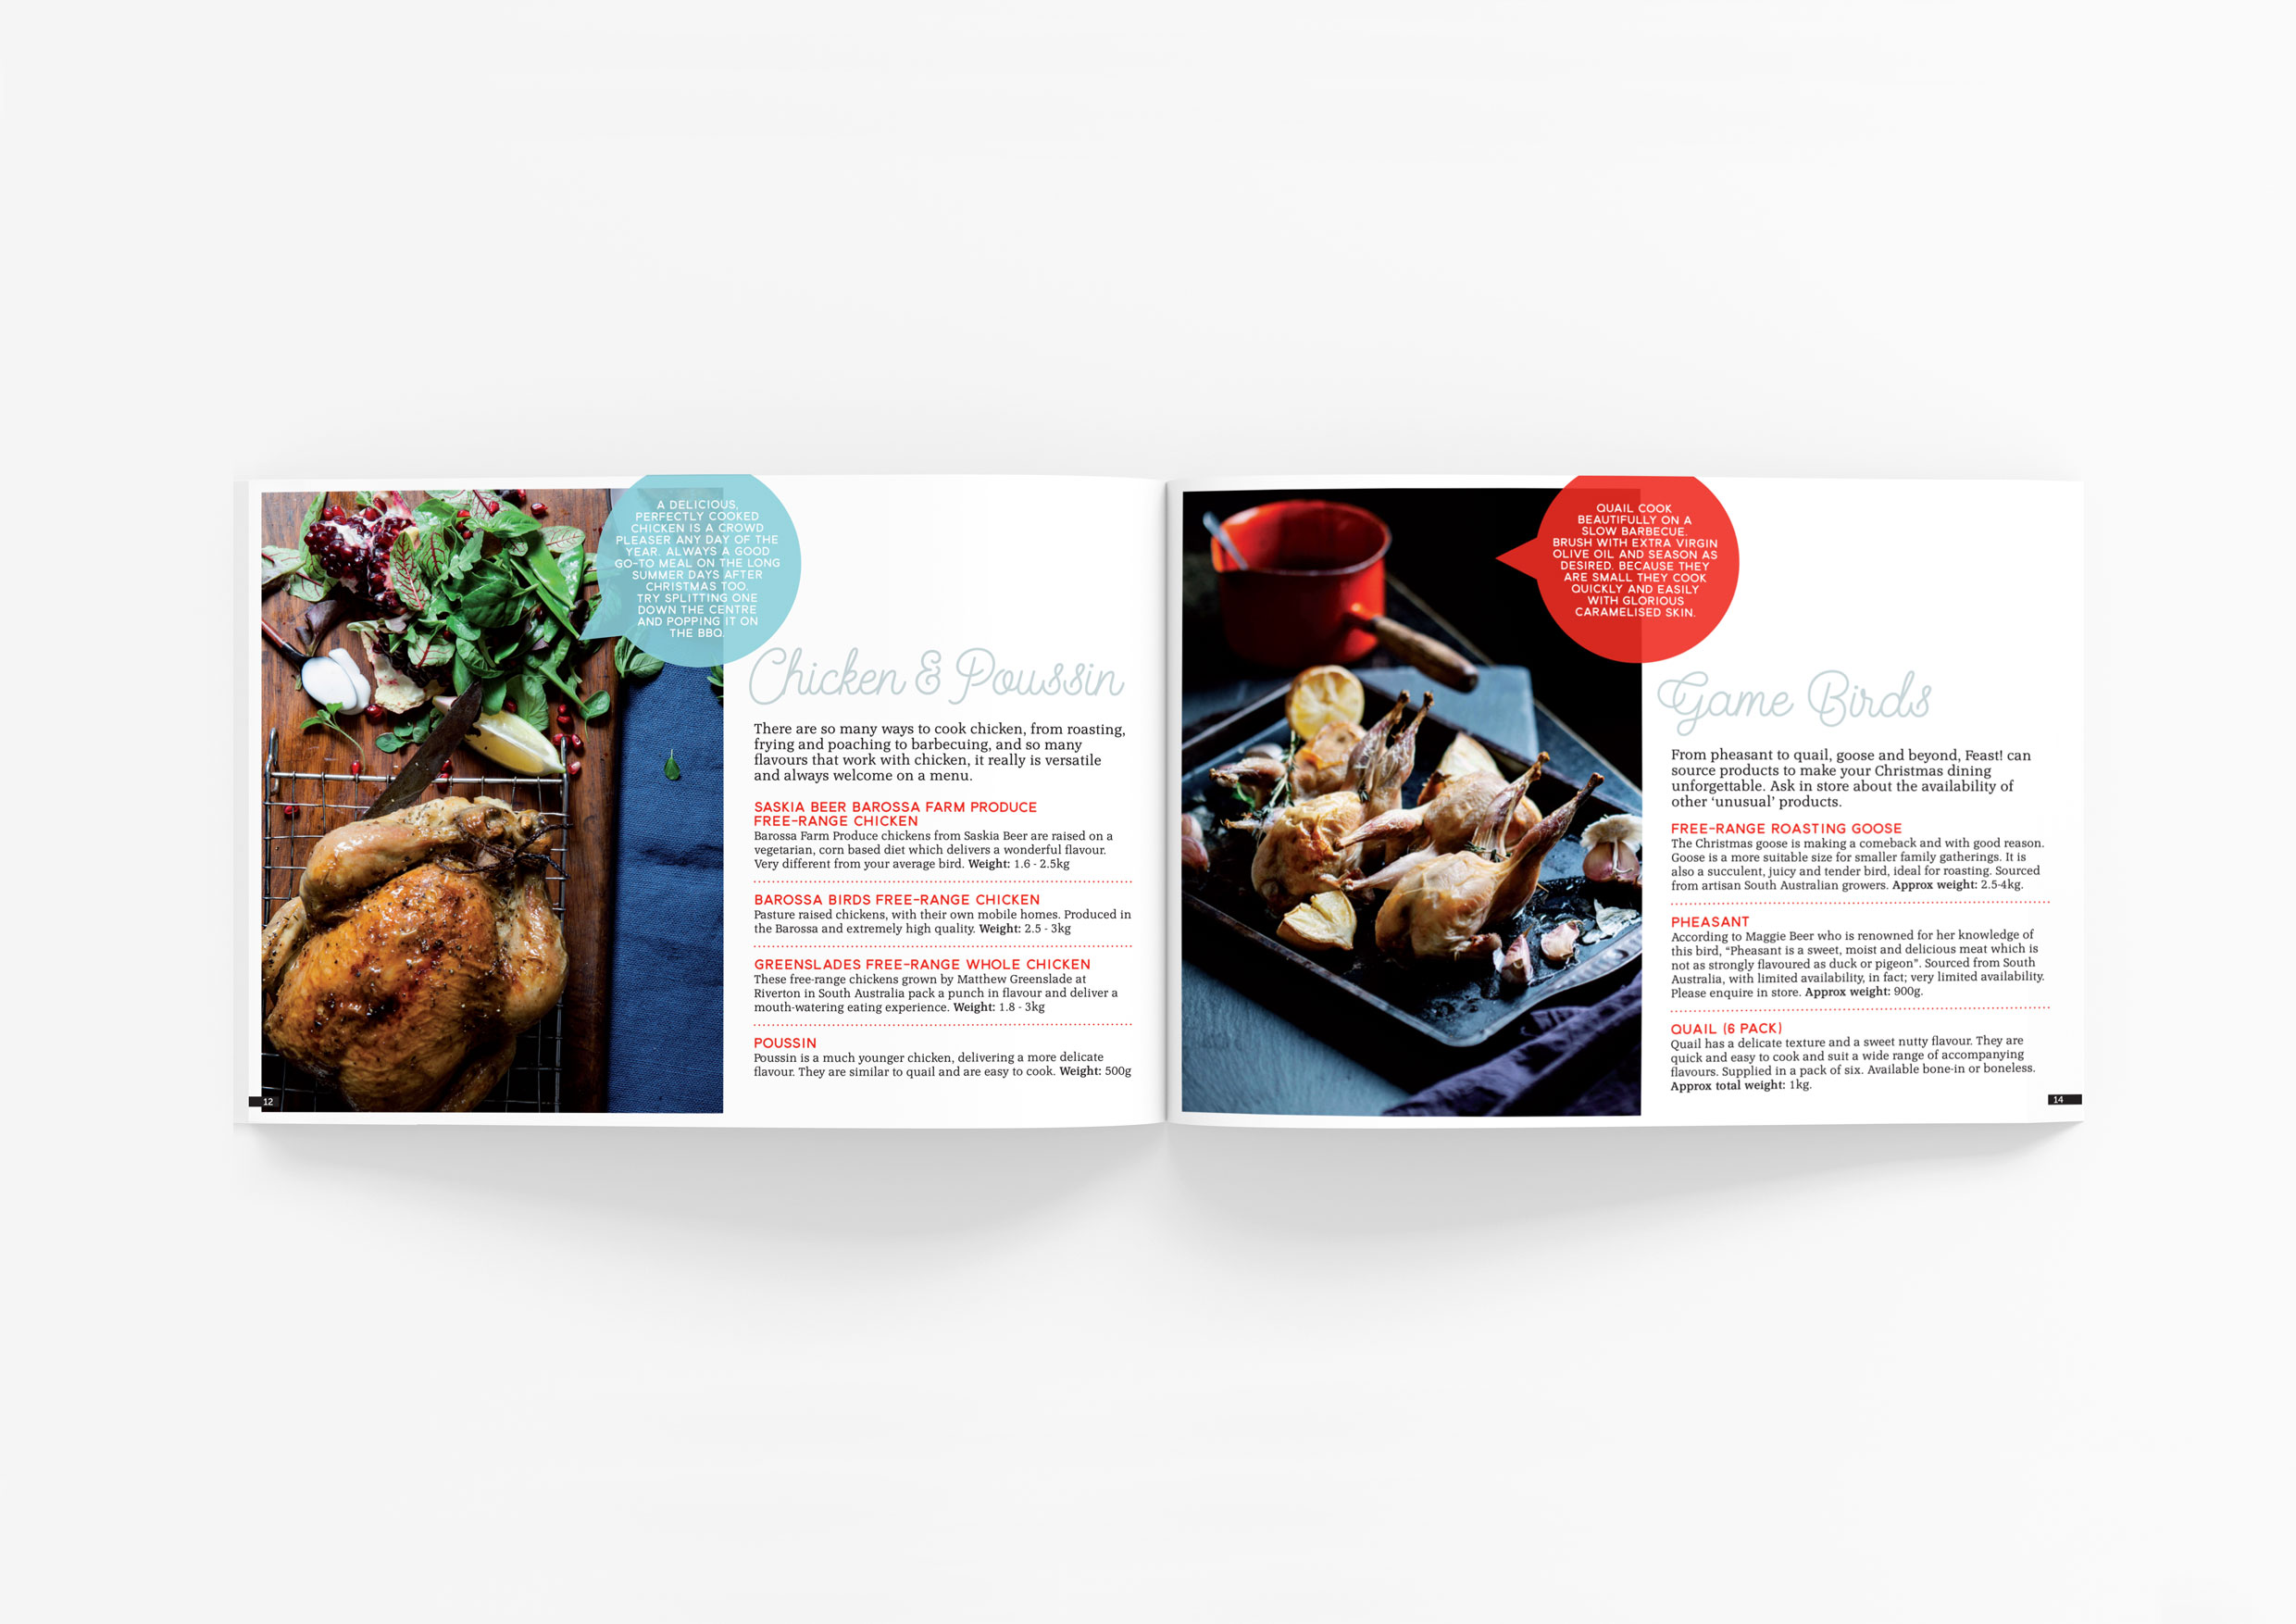 FEAST_2016_INSIDE-PAGES_13-14